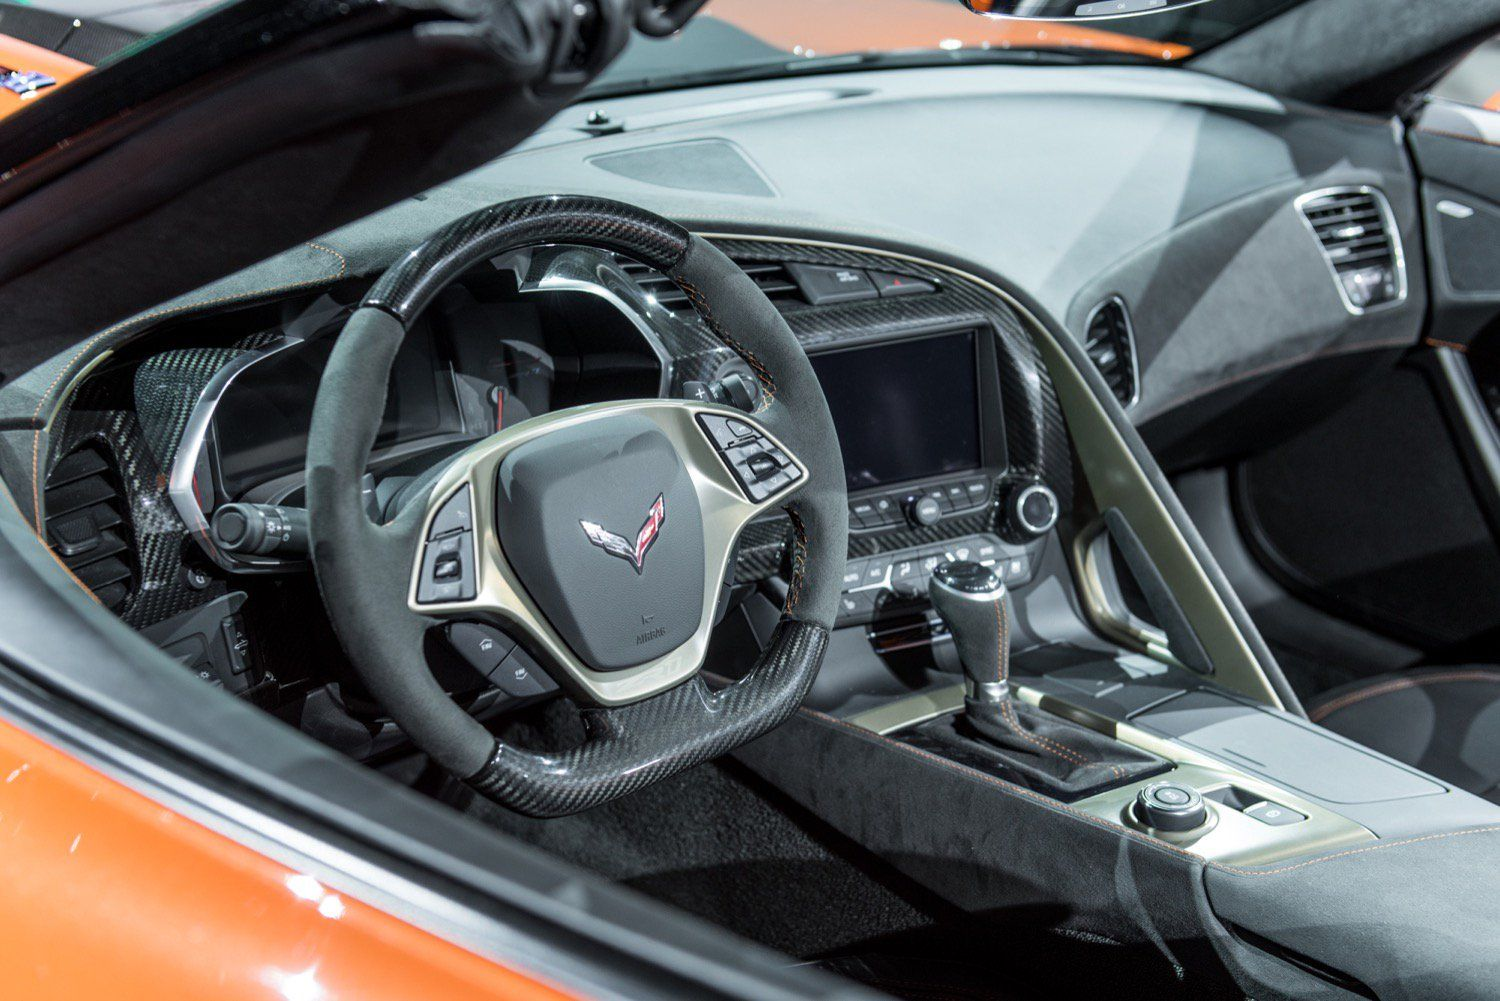 2019 Corvette Zr1 Convertible To Offer Ztk Track Package